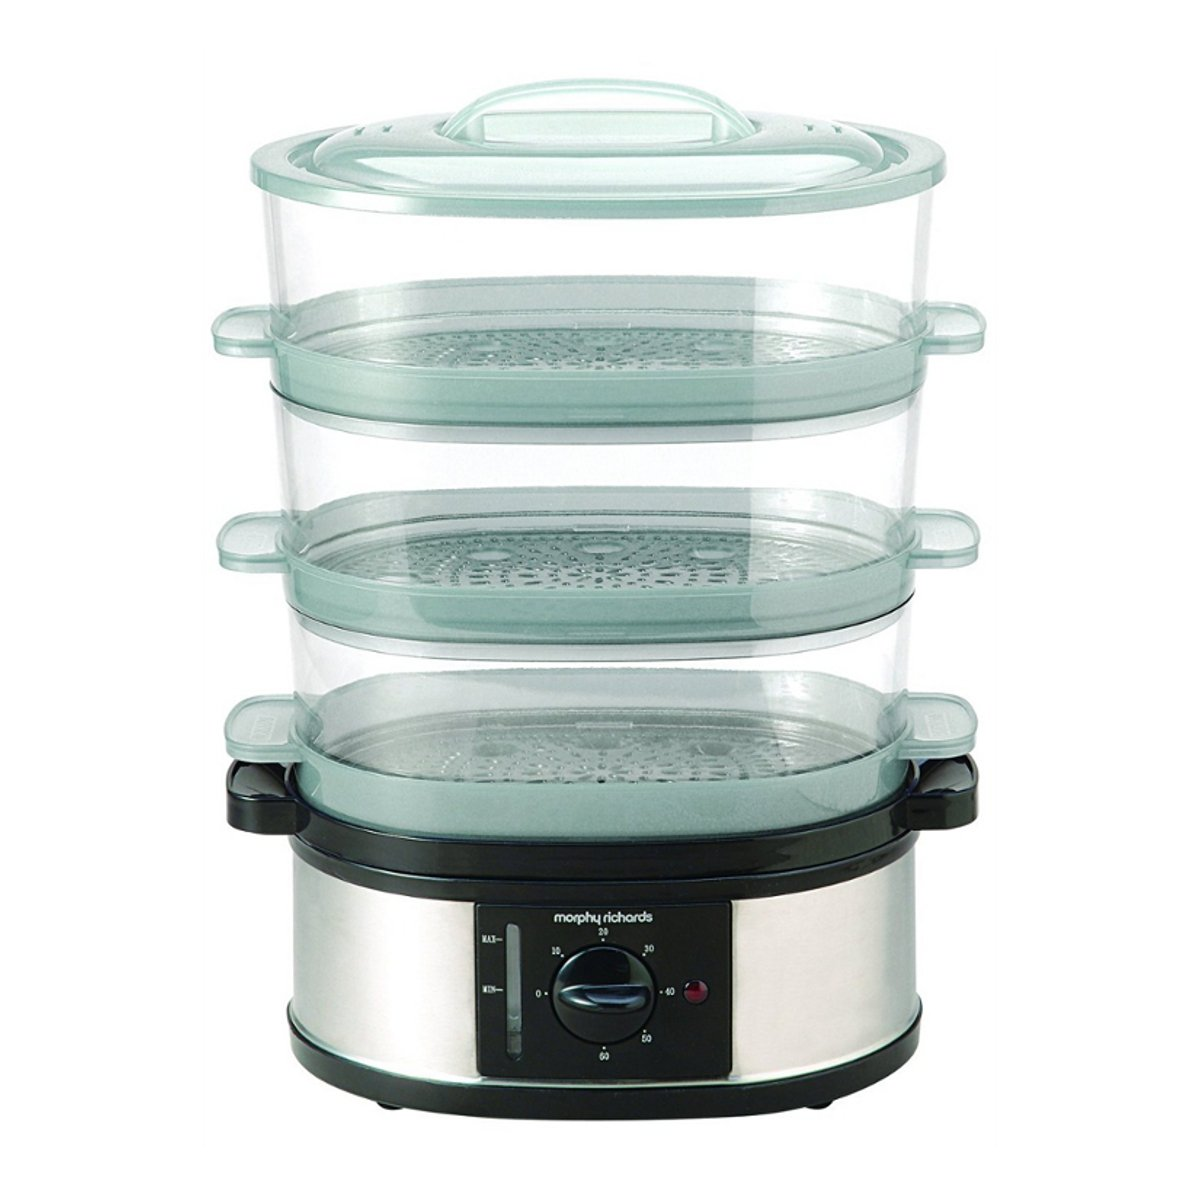 Morphy Richards 3 Tier Food Steamer 48755 Three Tier Stainless Steel ...